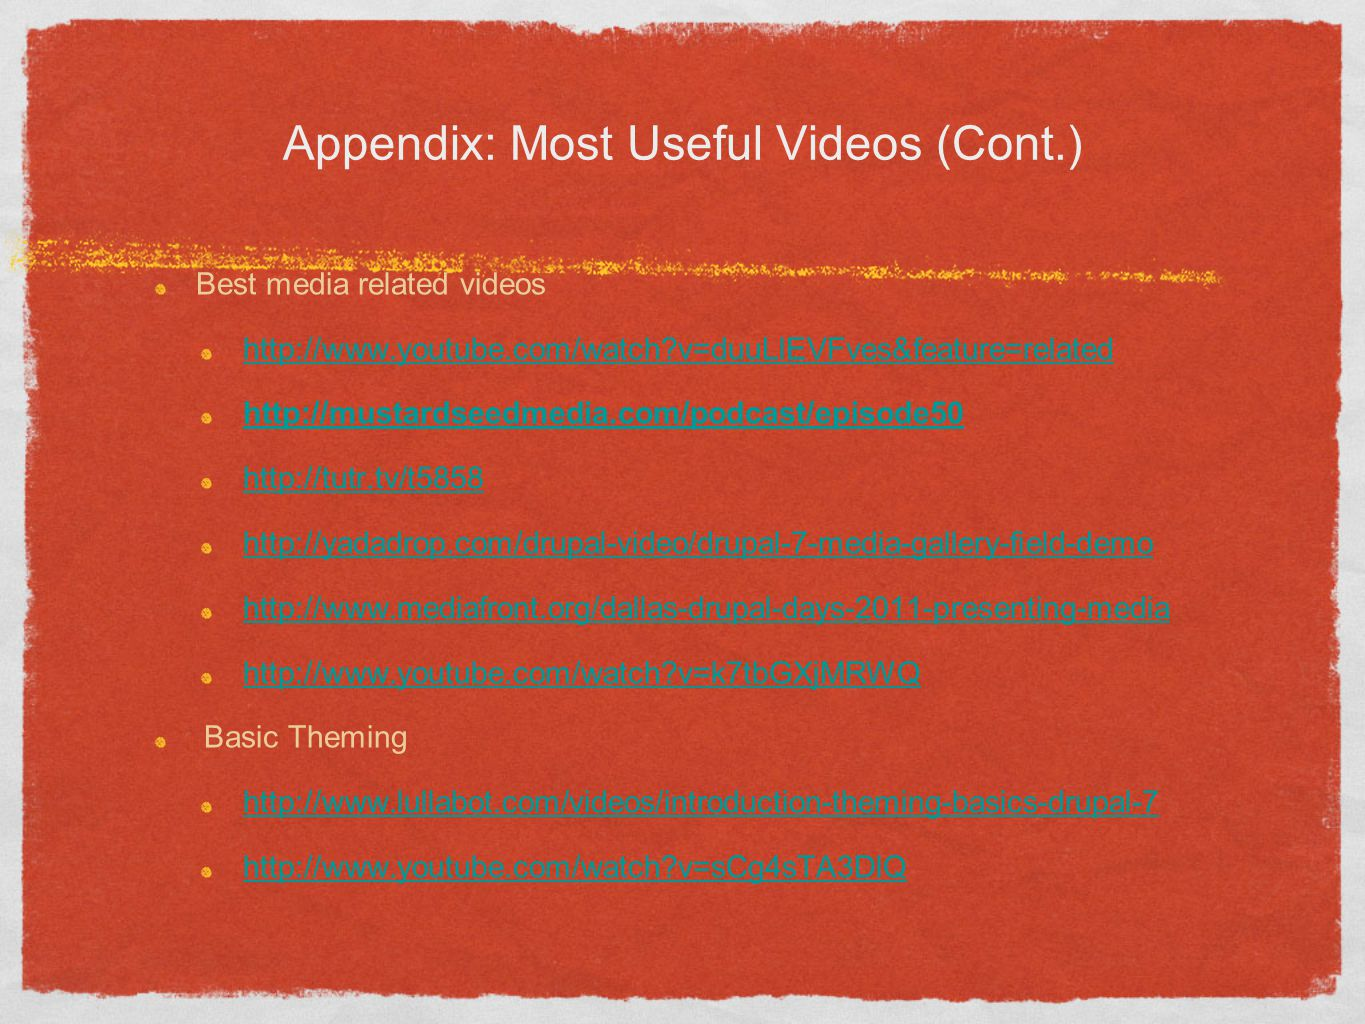 Appendix: Most Useful Videos (Cont.) Best media related videos http://www.youtube.com/watch?v=duuLlEVFves&feature=related http://mustardseedmedia.com/